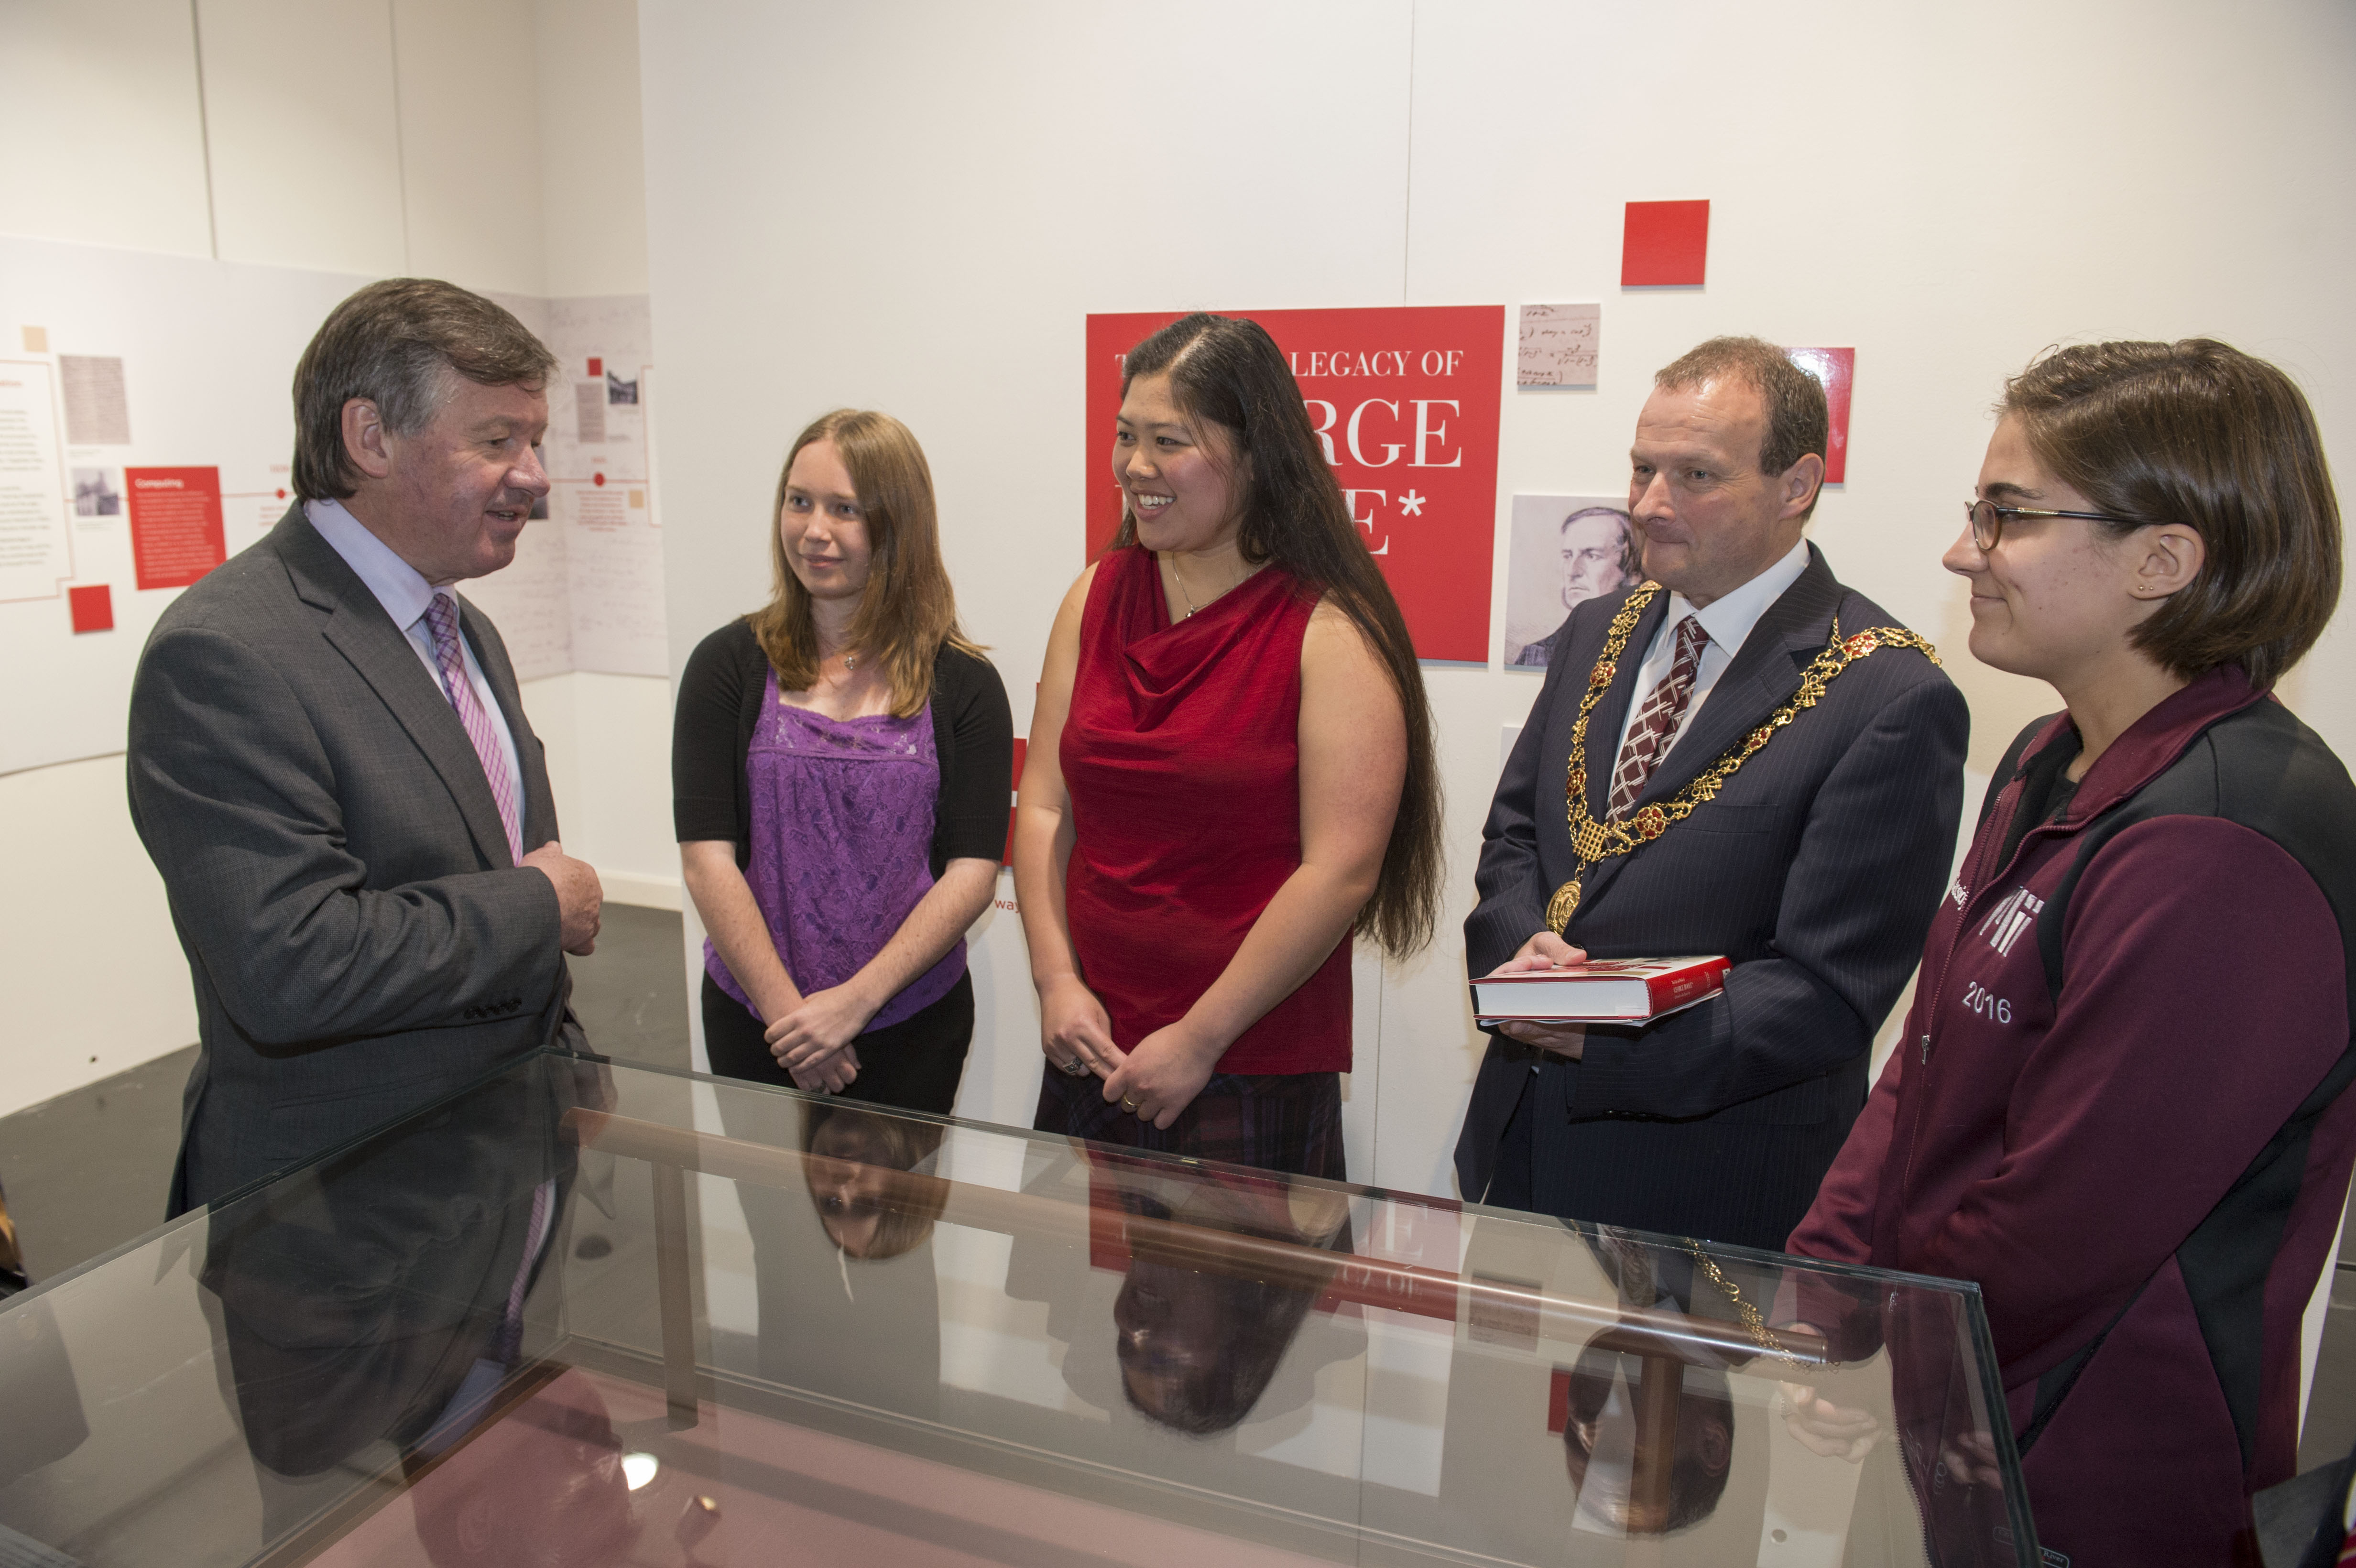 President of UCC Dr. Michael Murphy and Lord Mayor of Cork City Chris O'Leary speaking with MIT students Laura Standley, Grace Cassidy and Emily Yue at the opening of UCC Library's exhibition, Life and Legacy of George Boole 1815 -2015.